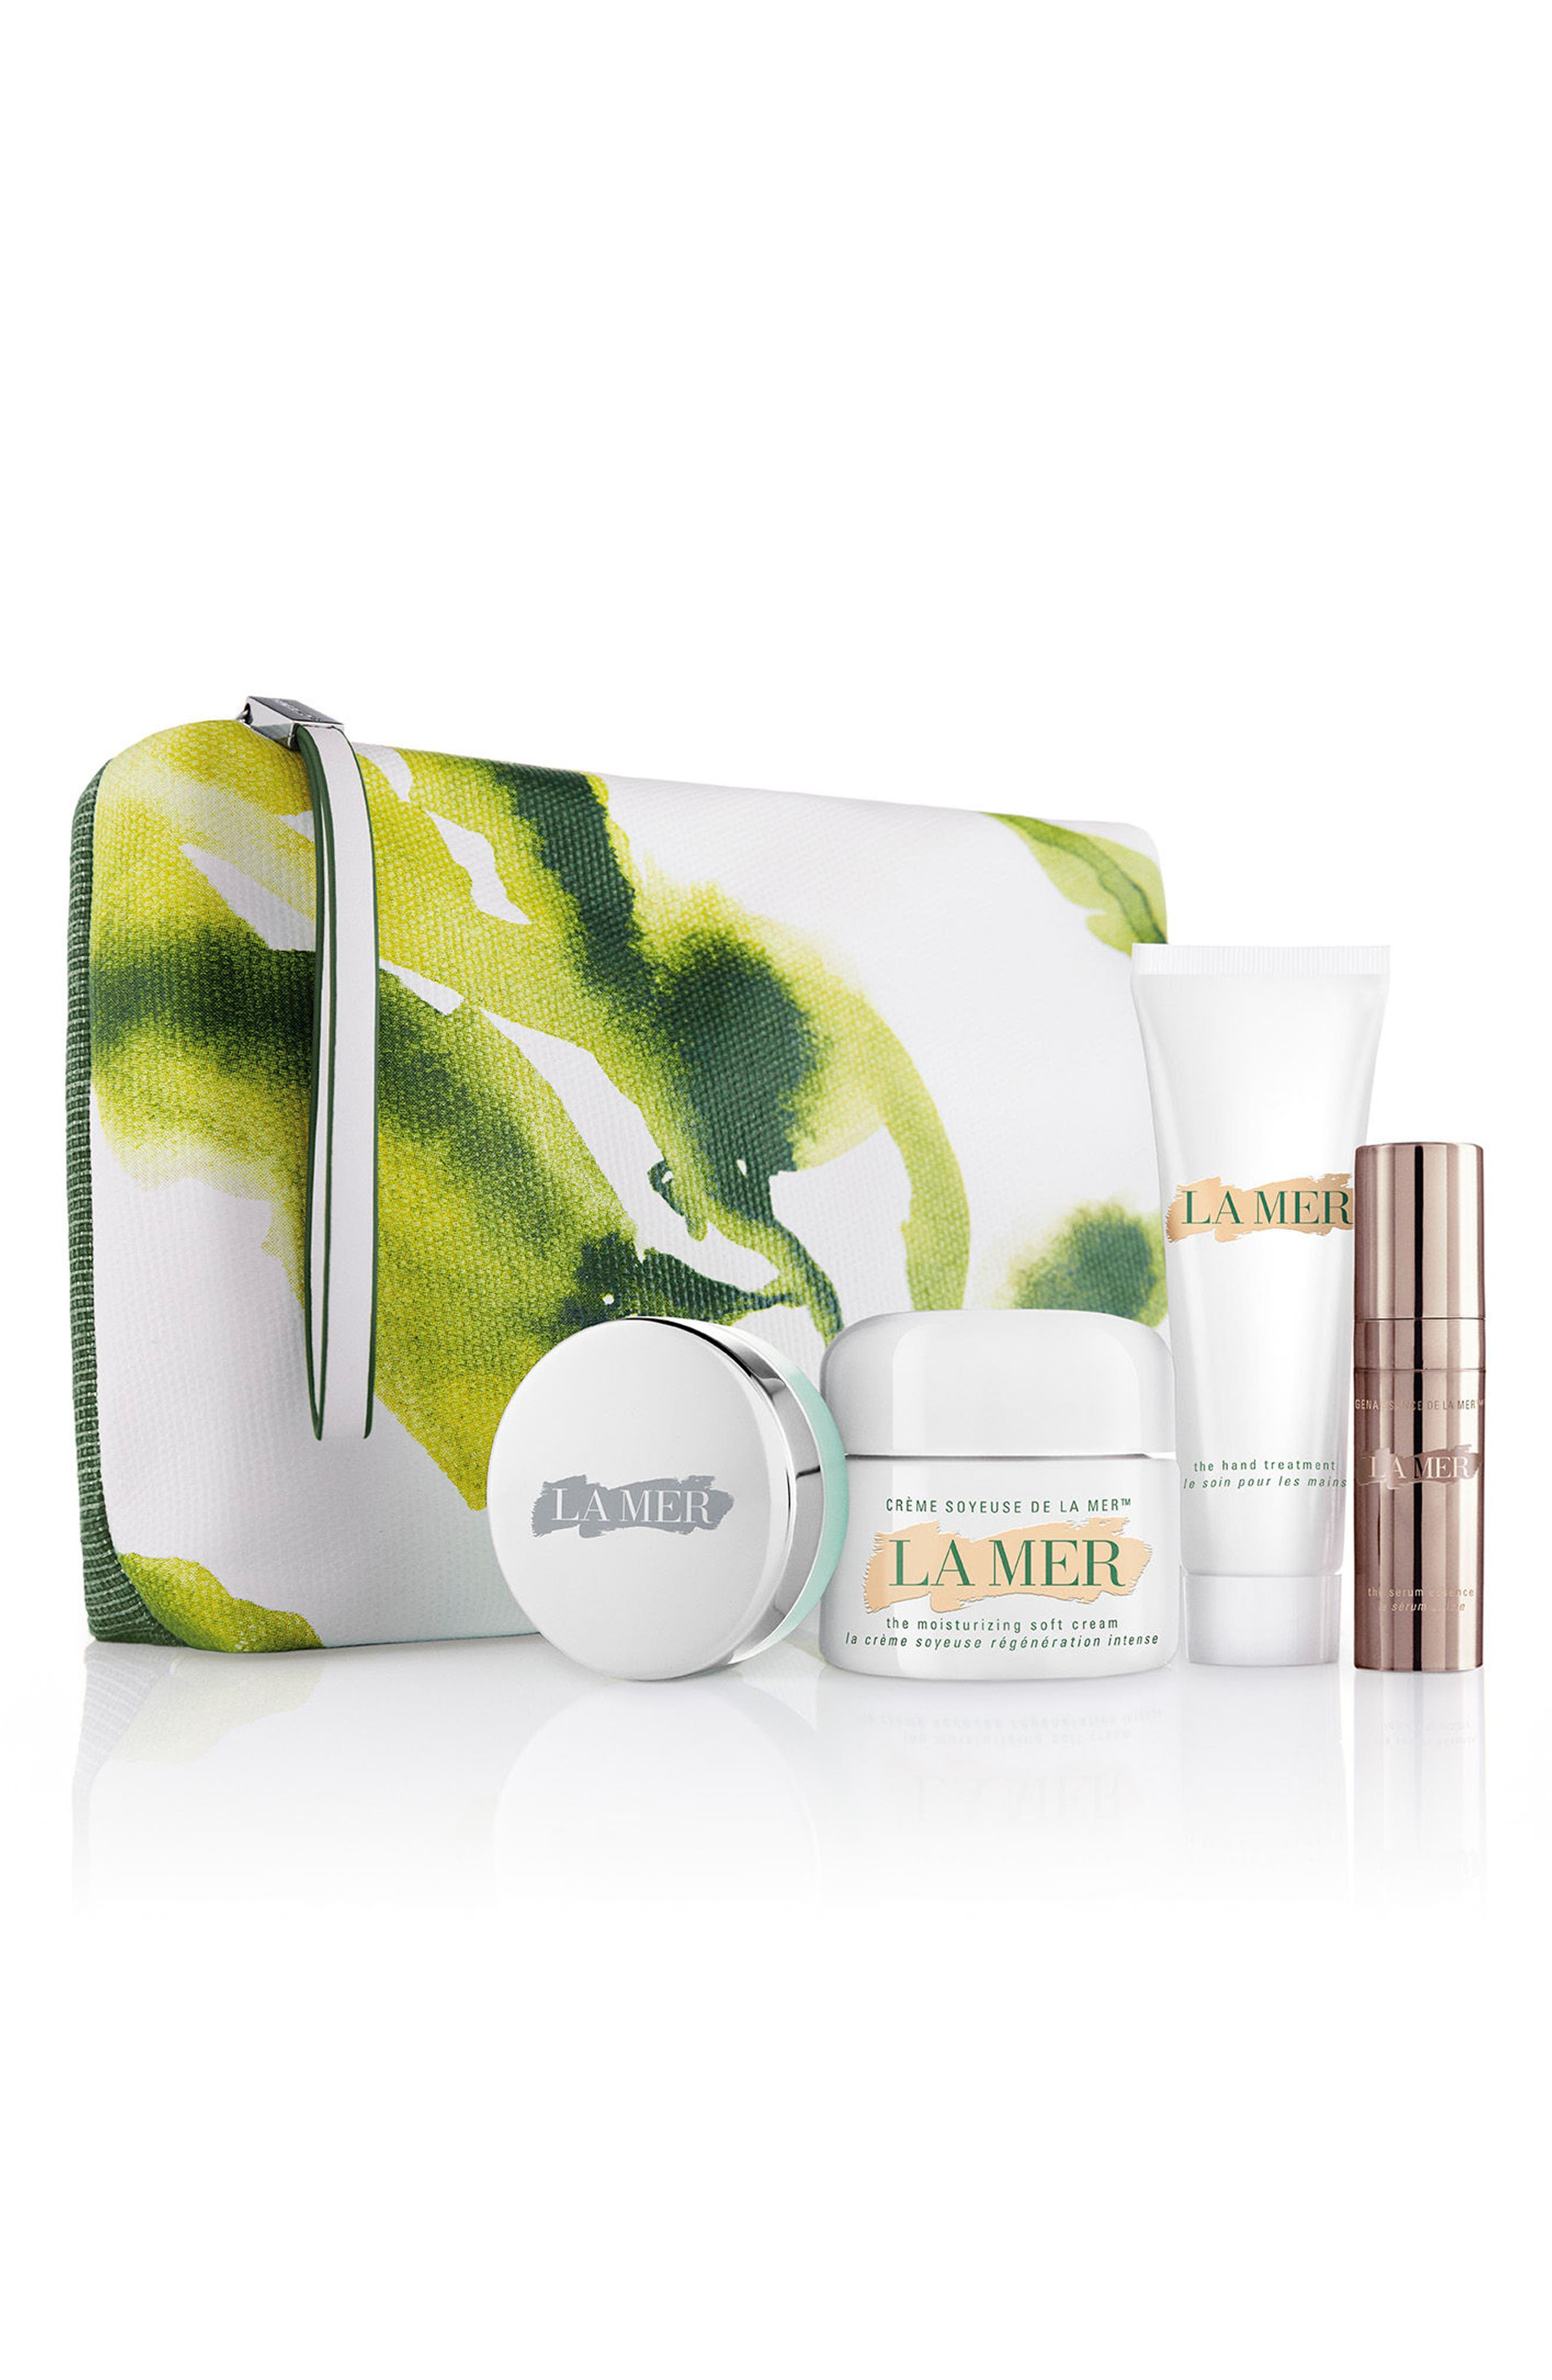 La Mer Jet Set Collection ($343 Value)